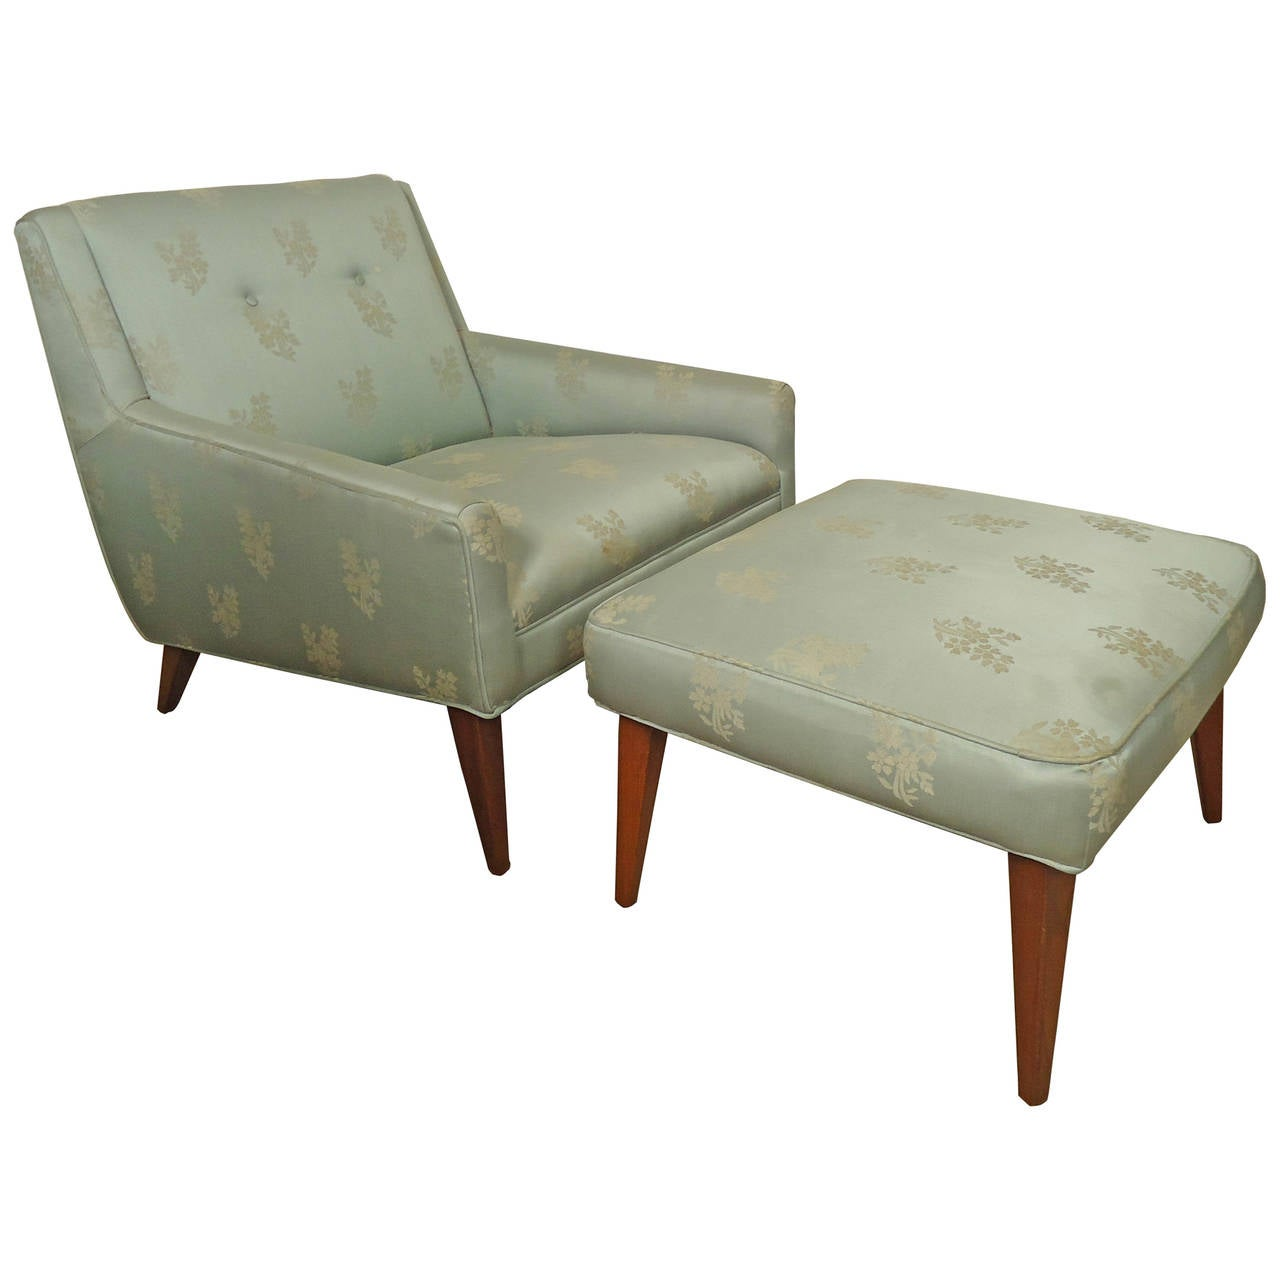 Midcentury lounge chair with matching ottoman for sale at for Matching lounge furniture